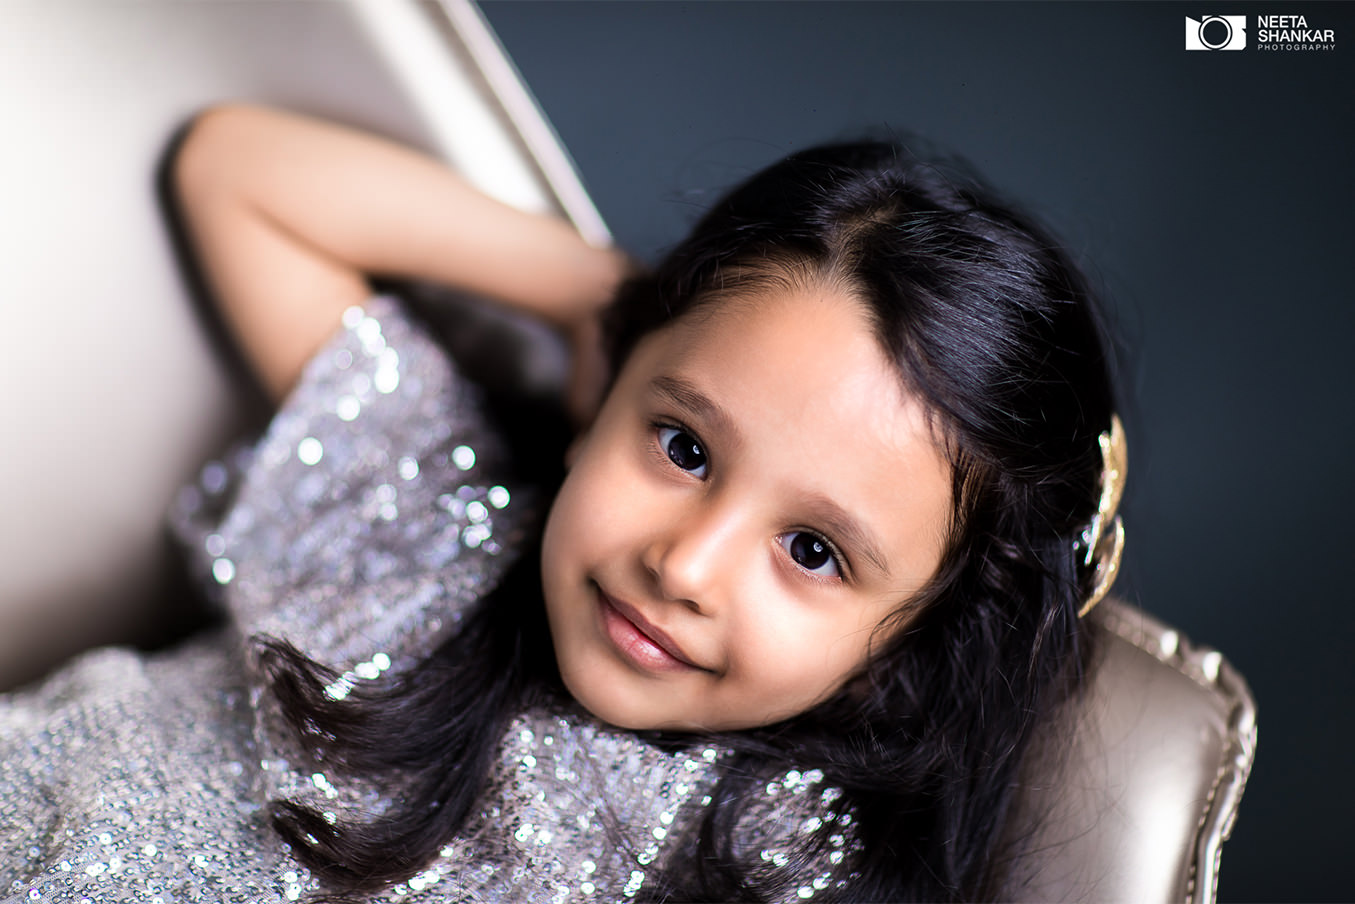 Neeta-Shankar-Photography-Baby-Kids-Portraits-Milestone-Sessions